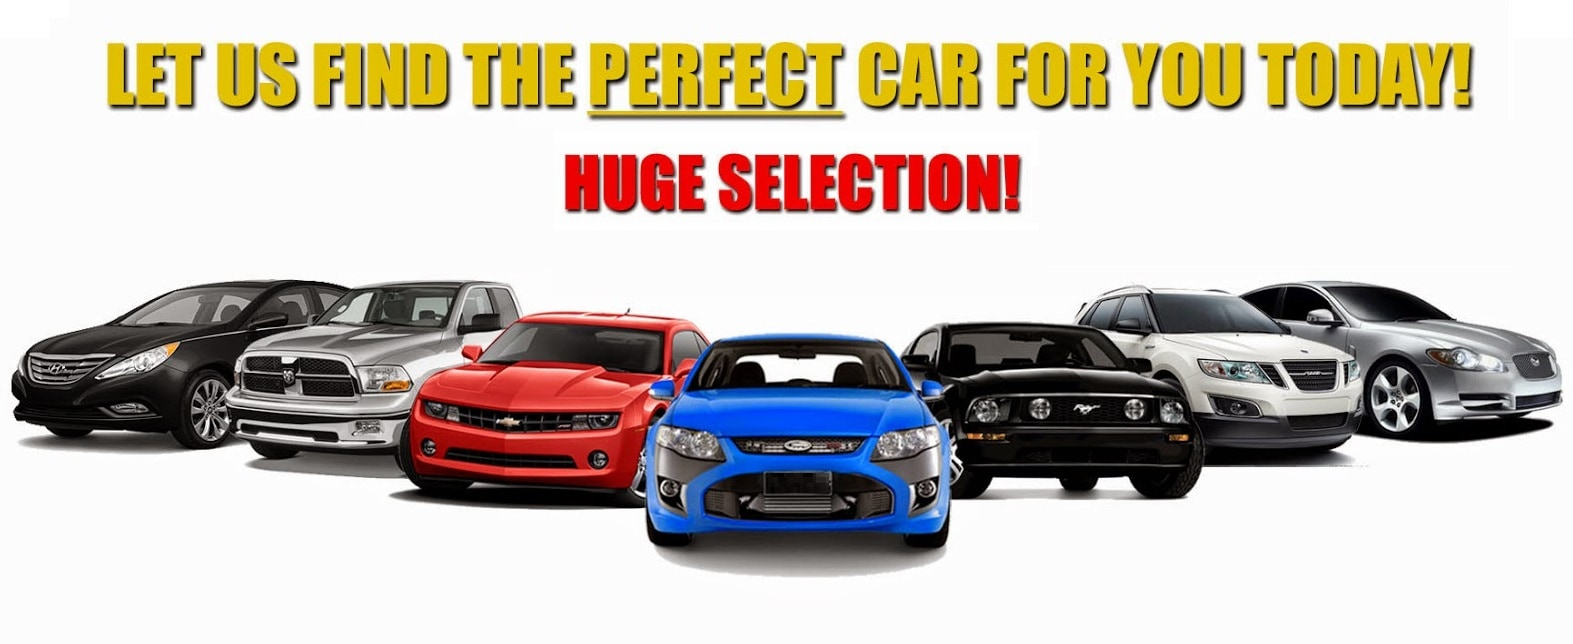 Local Used Car Website With Huge Selection